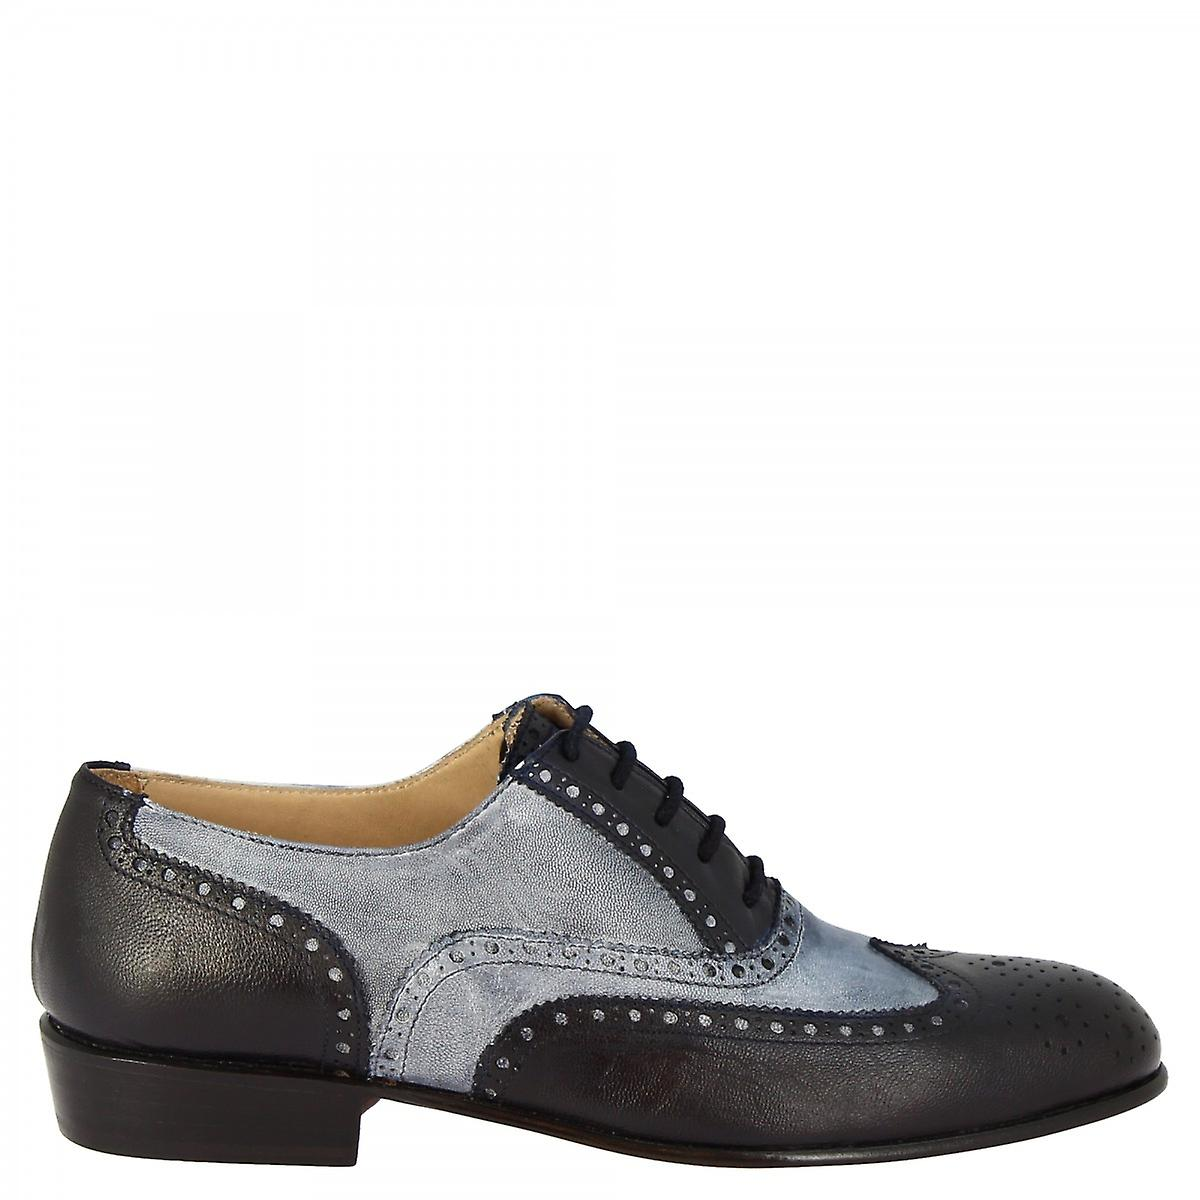 Leonardo Shoes Women's Handmade Classy Oxford In Gray Blue Goat Leather